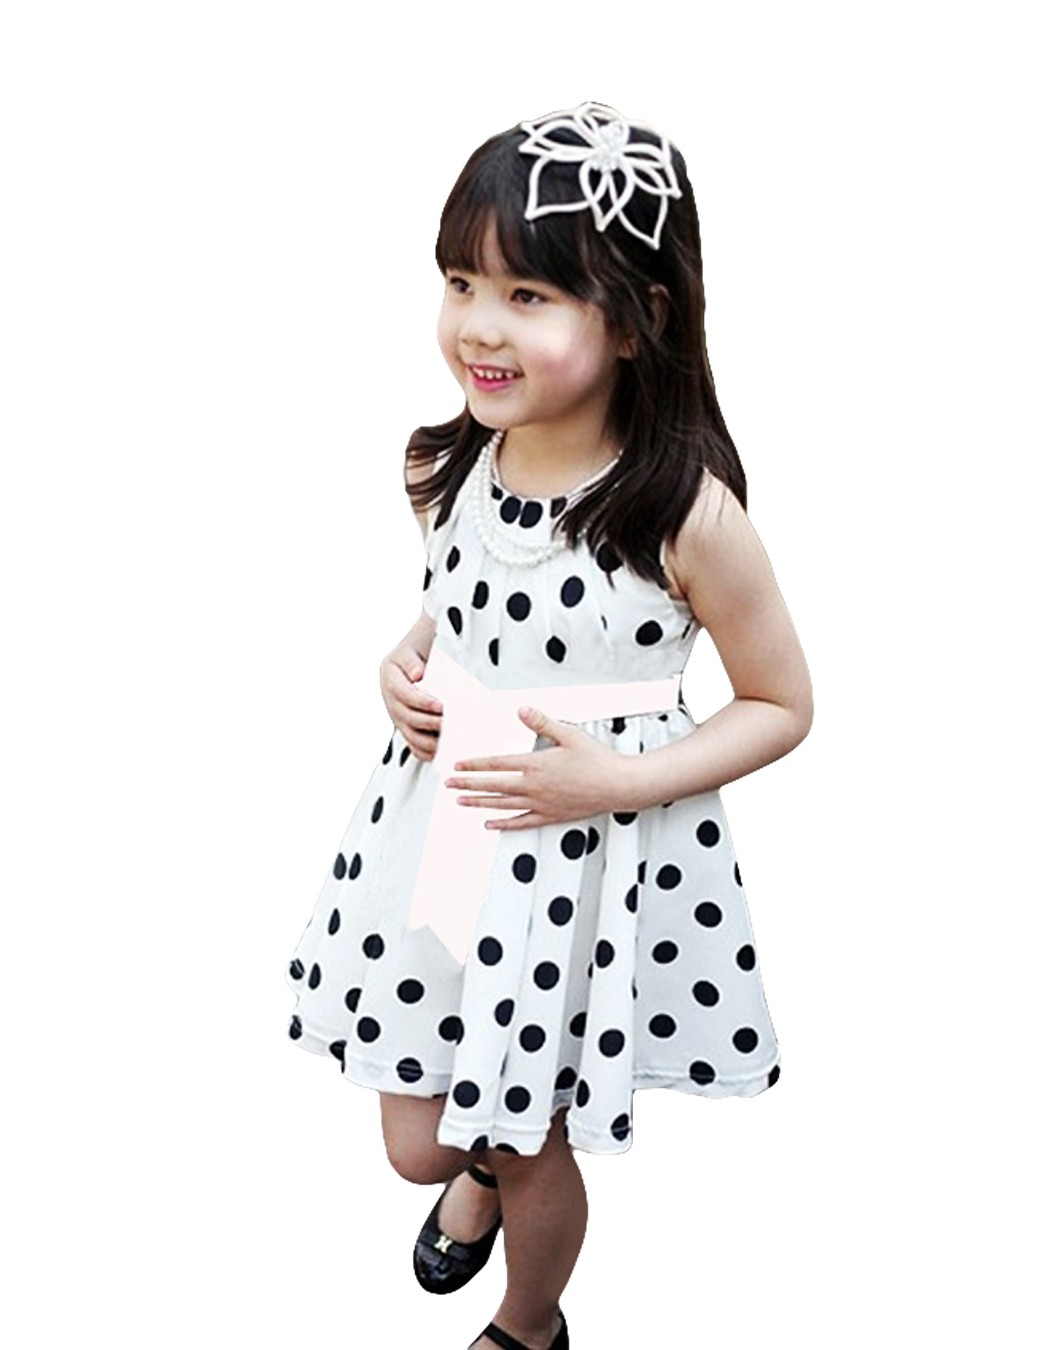 2016 Sale Kids Dresses For Girls Christmas Dress Korean Girl Kids Children's Casual Sleeveless O-neck Polka Dot Bow-knot Dress